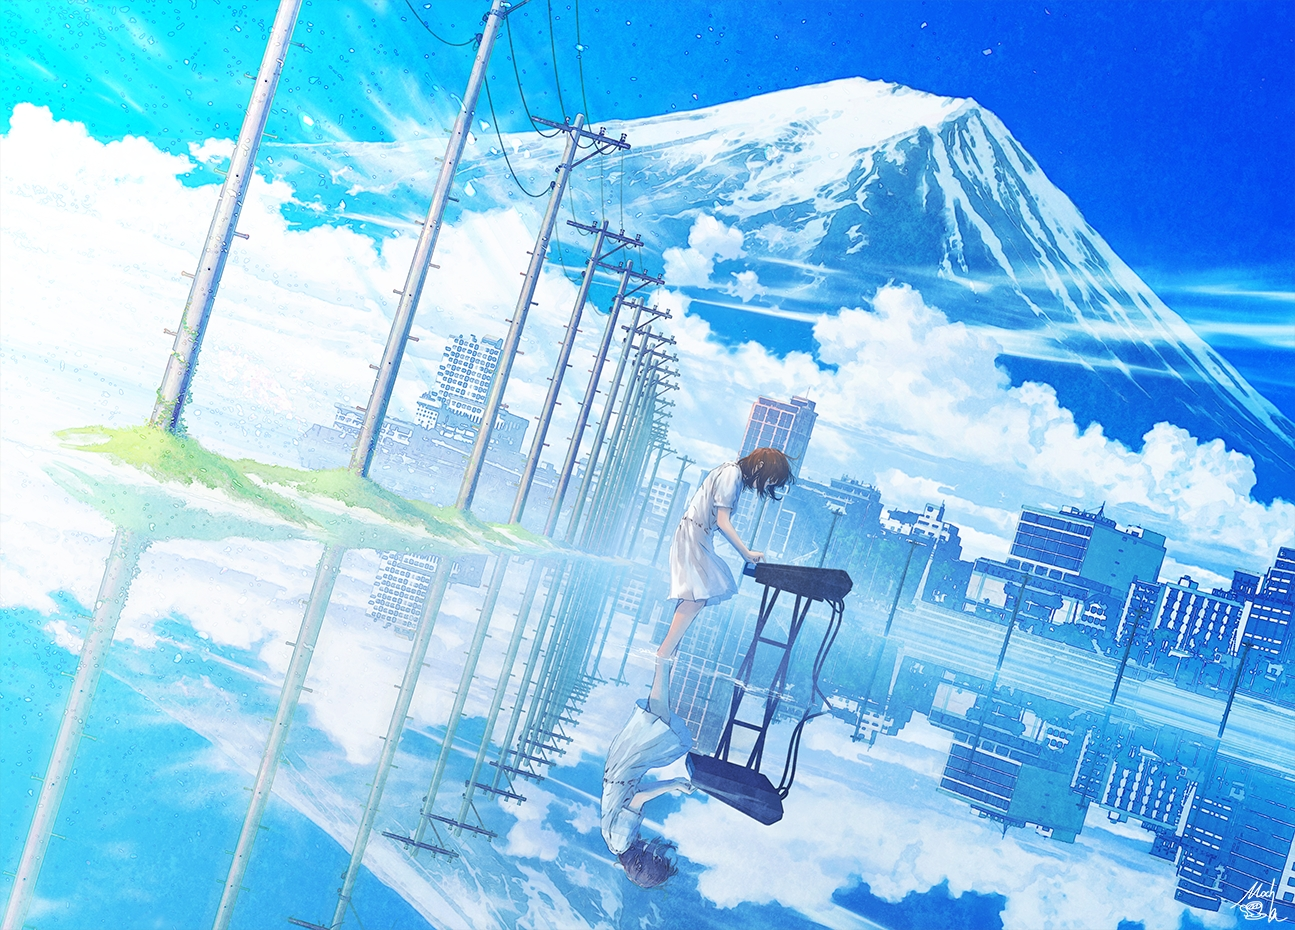 brown_hair building city clouds dress instrument mocha_(cotton) original piano reflection scenic short_hair signed sky water